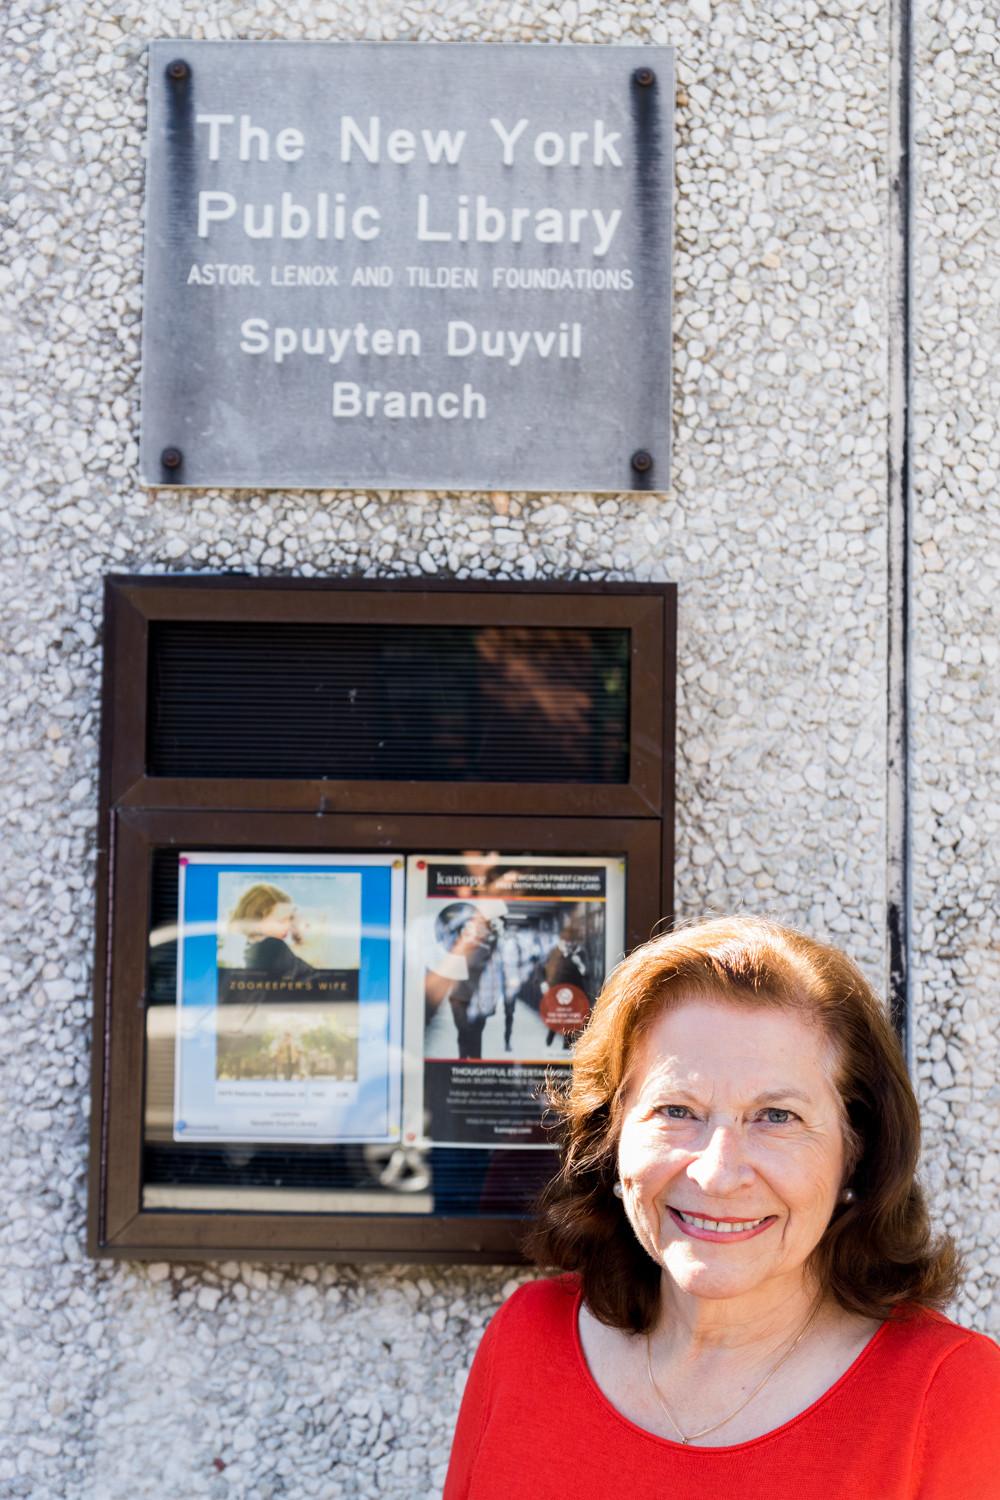 Faye Landsman would like the Spuyten Duyvil library to have more space for older teenagers. Her participatory budgeting suggestion includes funding for renovations to the building to create more space for programming.